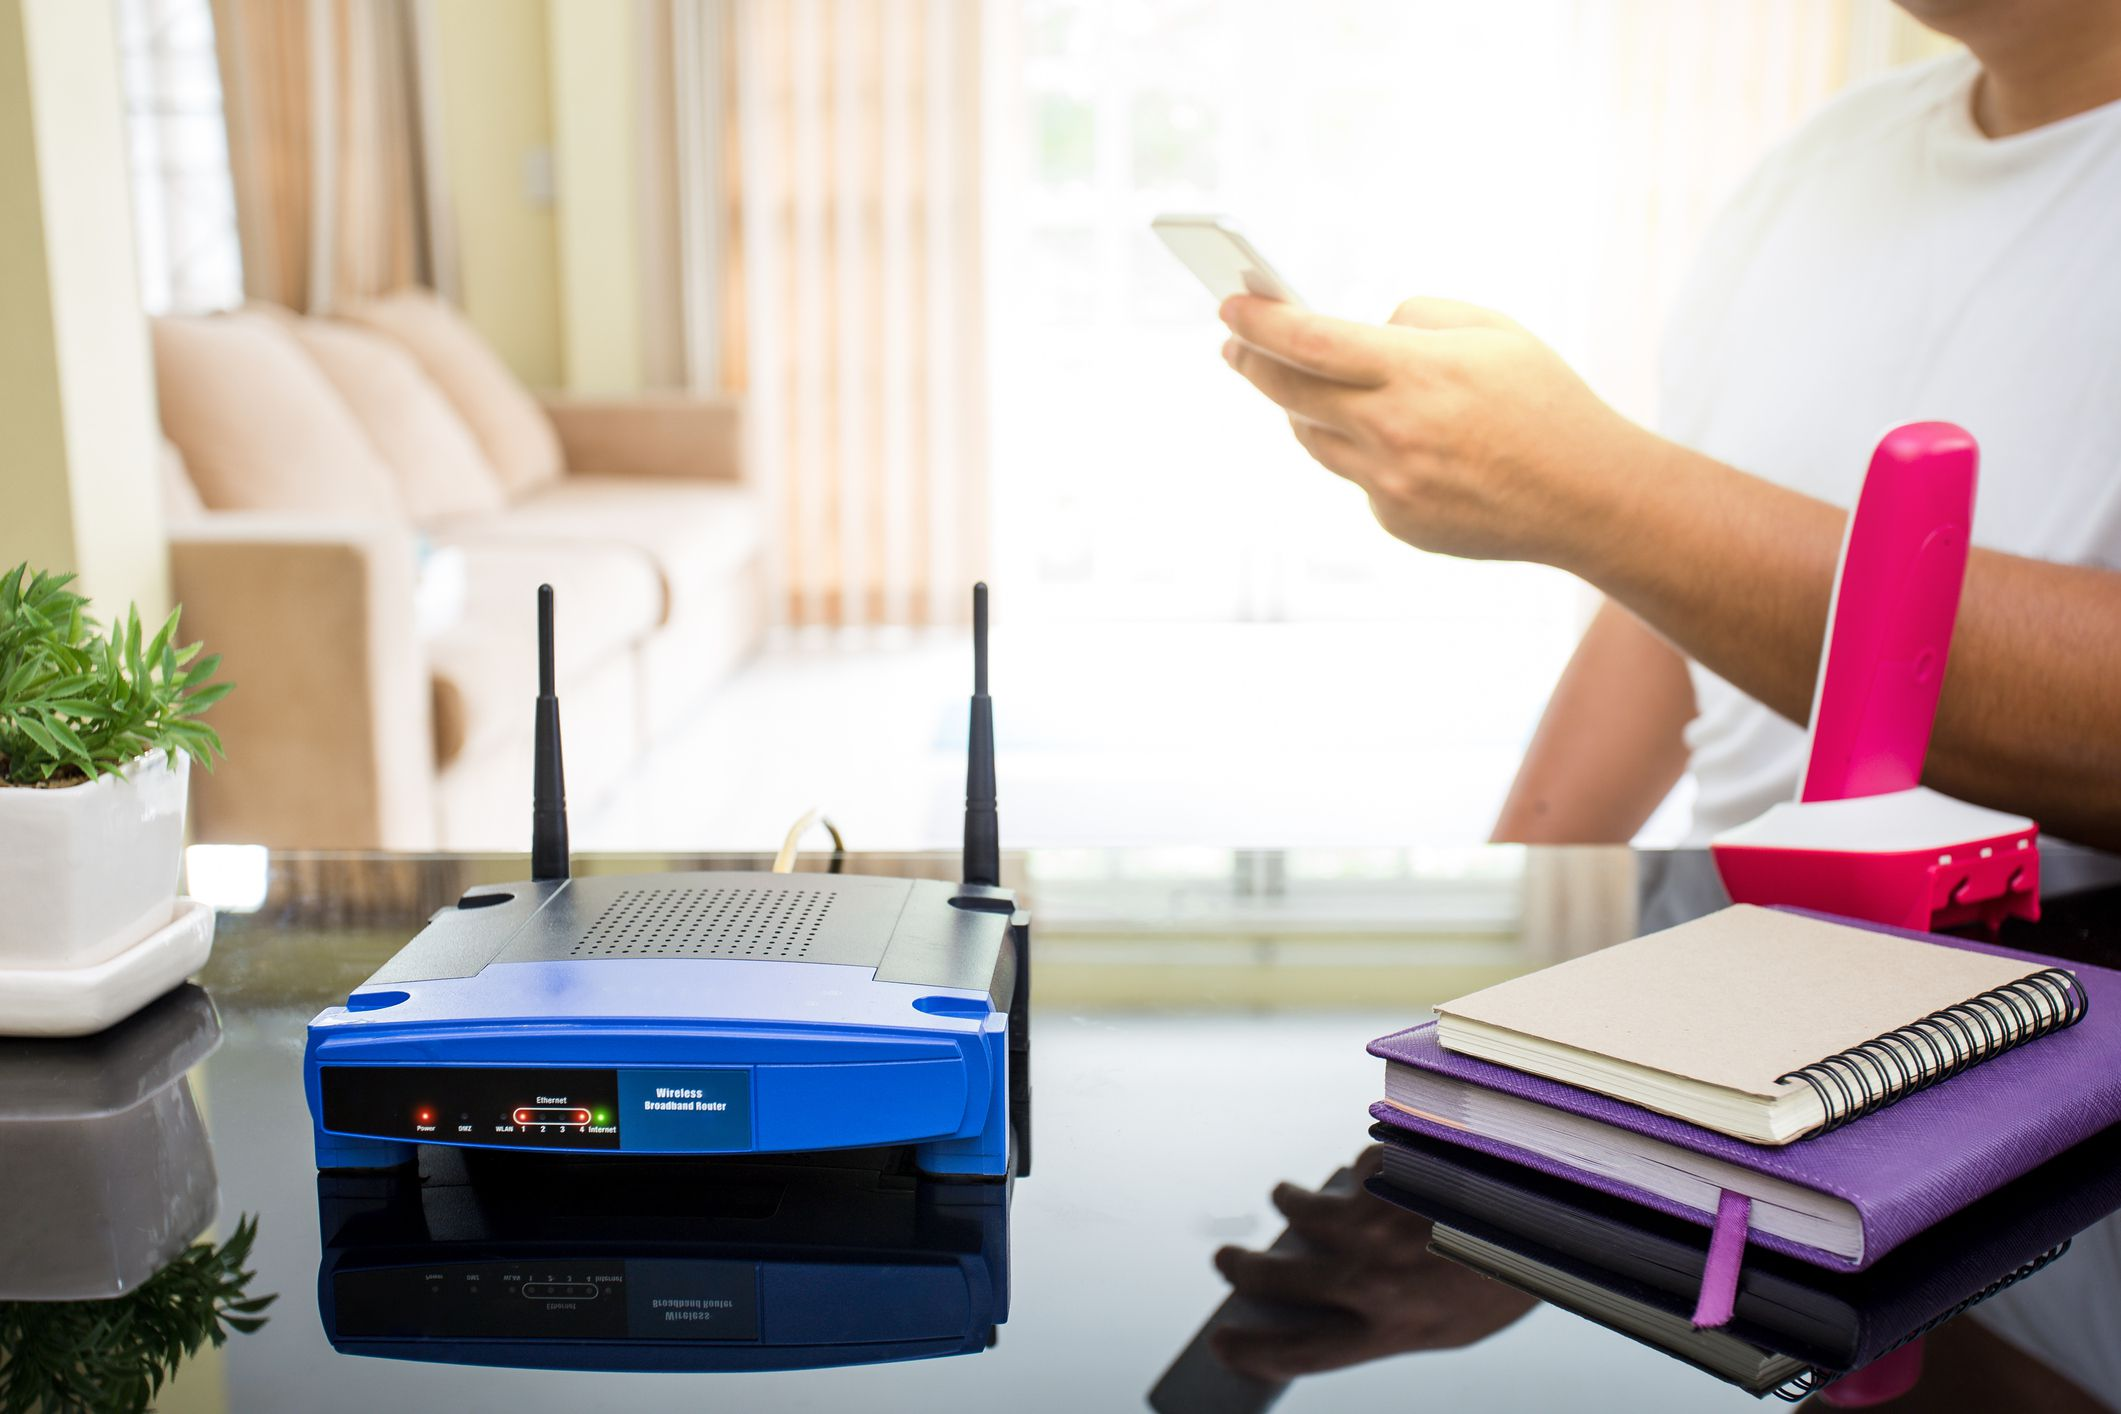 Changing Your SSID (Wi-Fi Name) on a Network Router